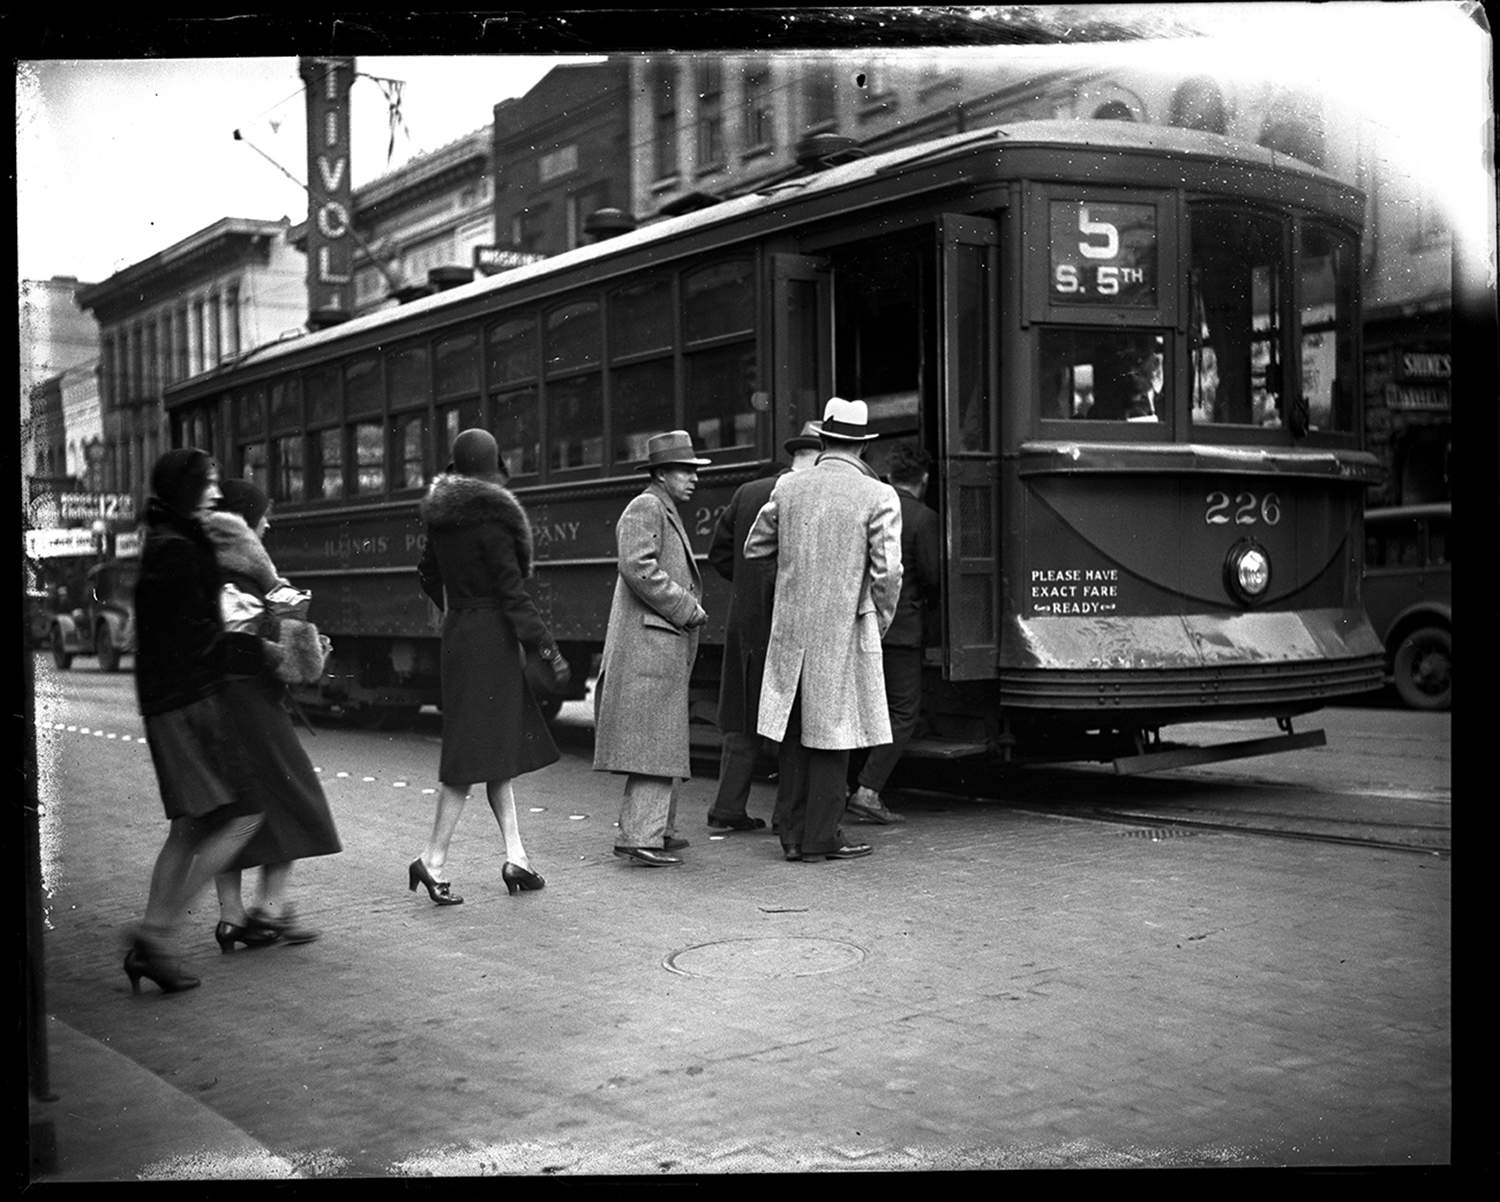 Passengers board street car on South Fifth Street in front of Tivoli Theater, Dec. 18, 1930. File/The State Journal-Register